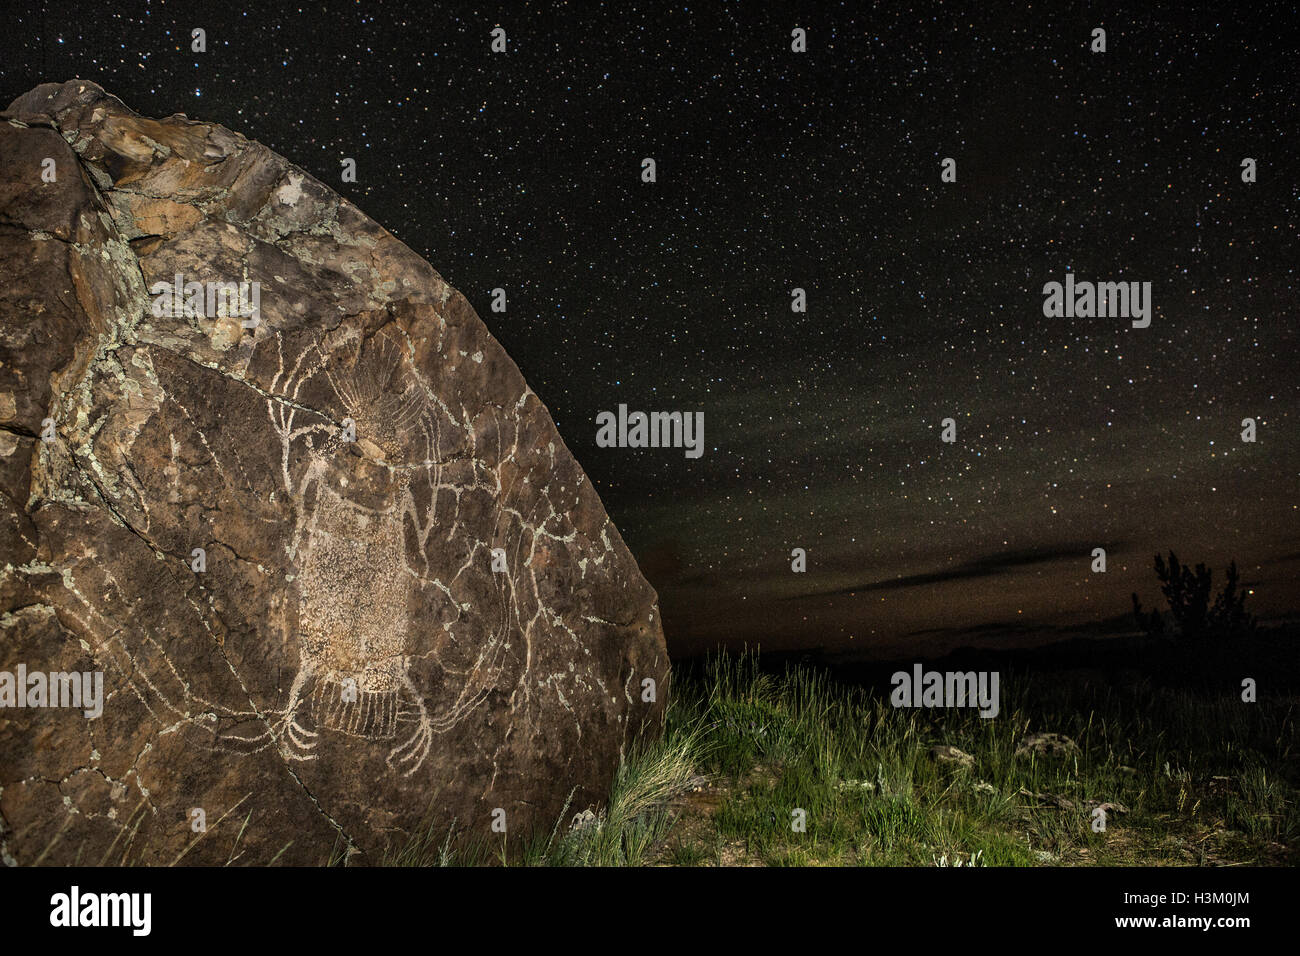 WY01024-00...WYOMING - Pictograph created by the Native American Sheep Eaters Tribe stands alone on a rock above - Stock Image